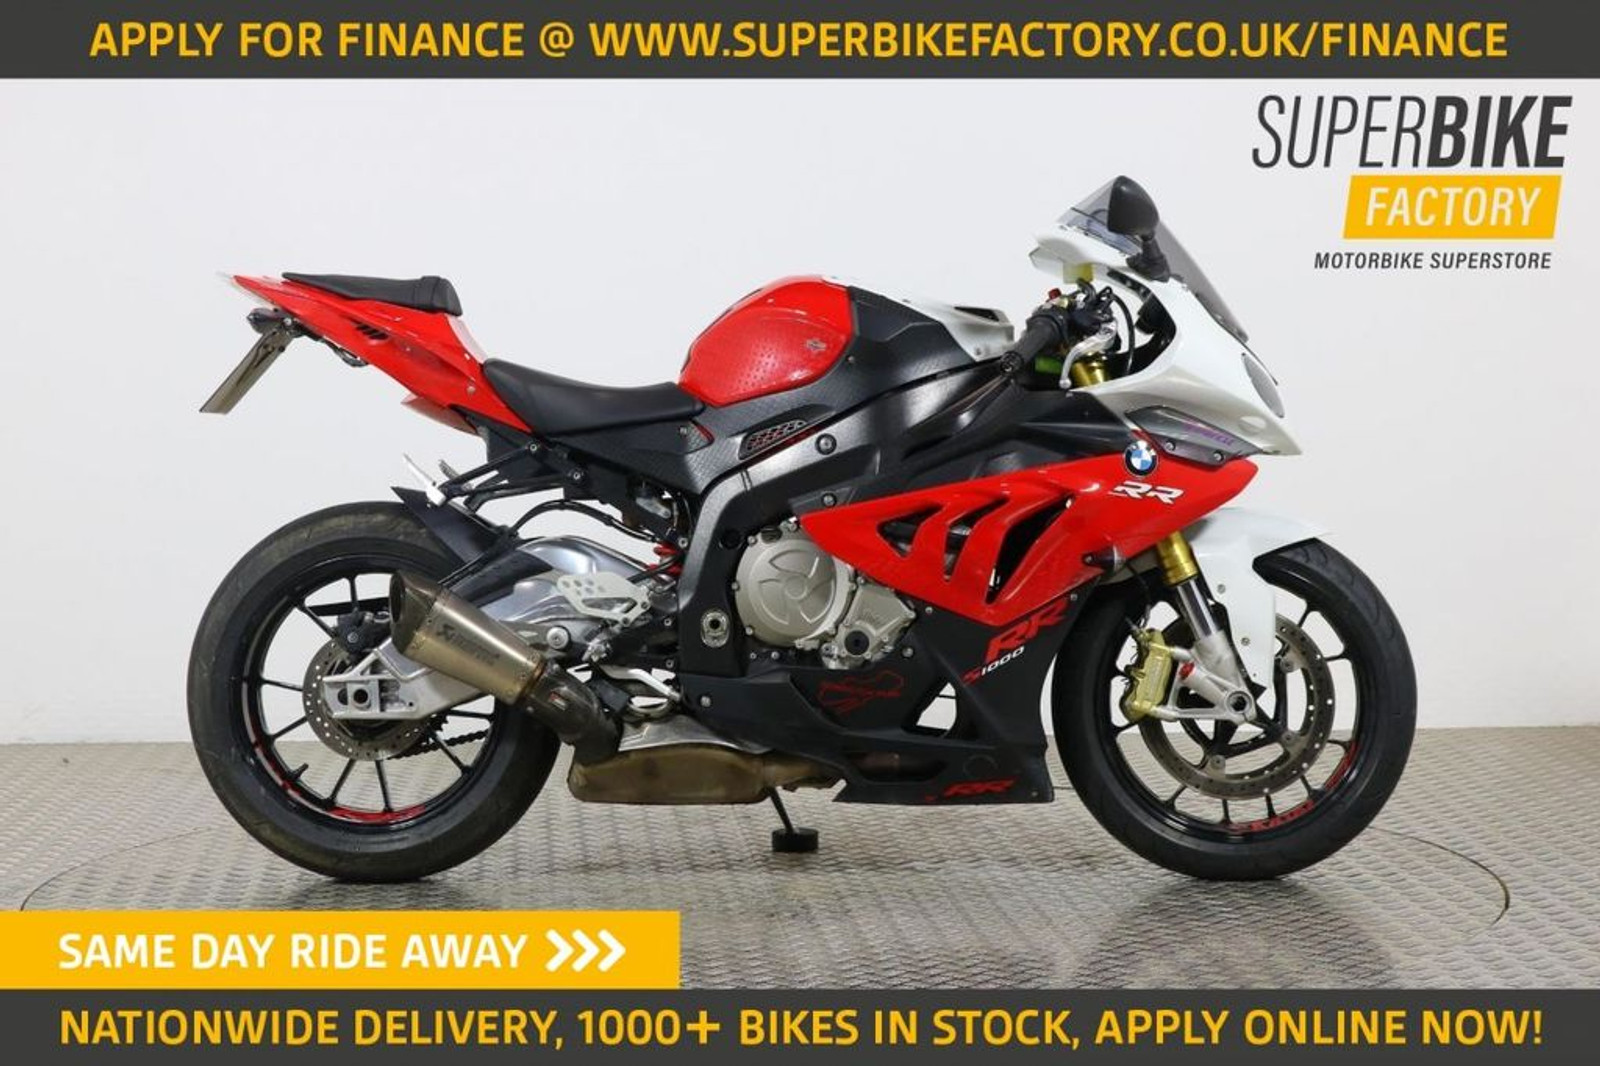 2012 Bmw S1000rr White With 17126 Miles Used Motorbikes Dealer Macclesfield Cheshire The Superbike Factory